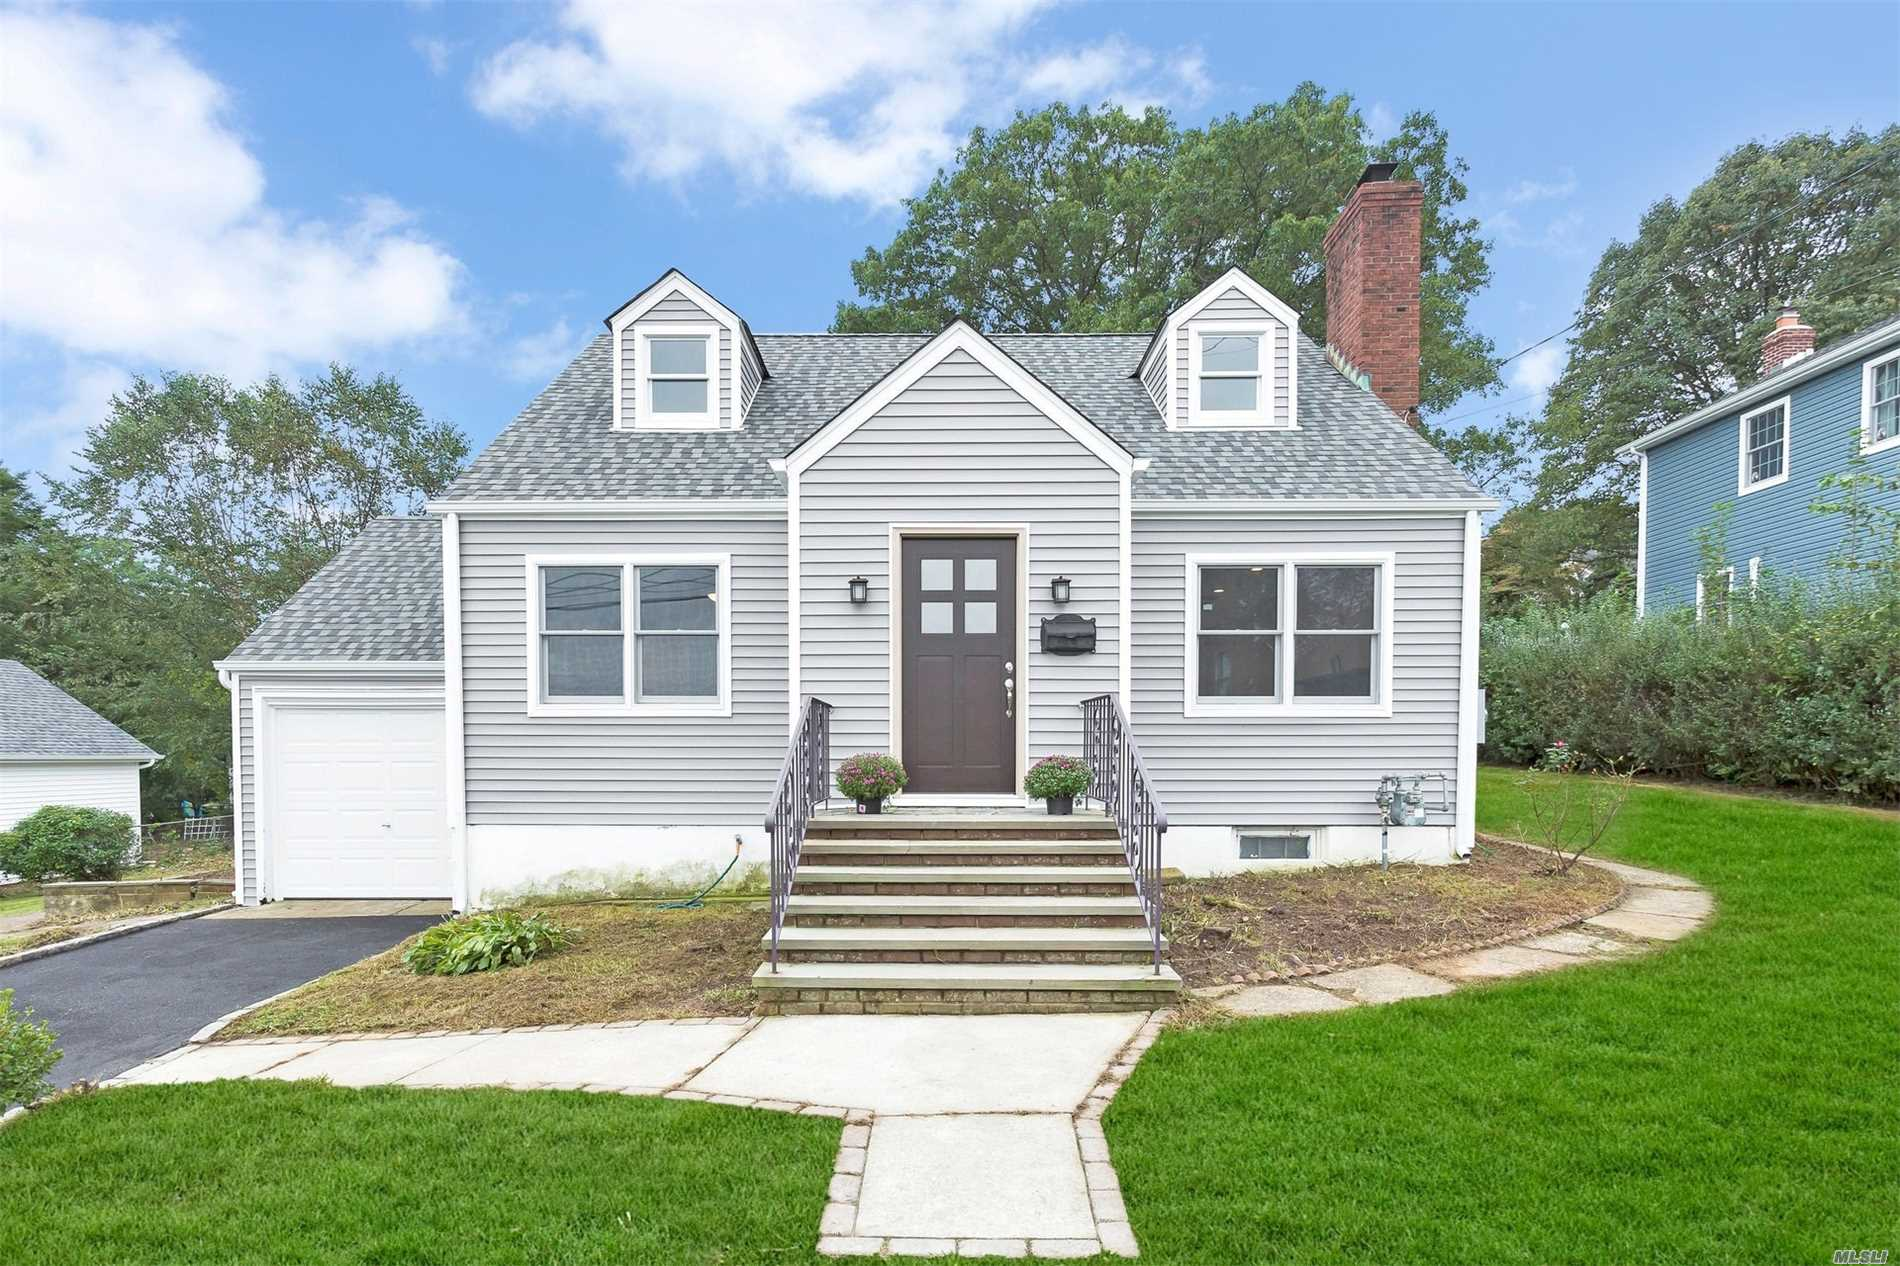 This Stunning Expanded Cape Has Been Totally & Beautifully Renovated Inside And Out With An Open Floor Plan, Master Bedroom Could Be On First Or 2nd Floor. New Baths And New Kitchen With Quartz Counter, Mudroom/Office, Radiant Heat On Entire First Floor And 2nd Floor Bathroom. This Gem Has New Siding/Roof/Driveway And Boasts A Quiet Mid-Block Location, Convenient To All! Near Train, School, Grocery And Shops! Part Of Award-Winning North Shore School District.